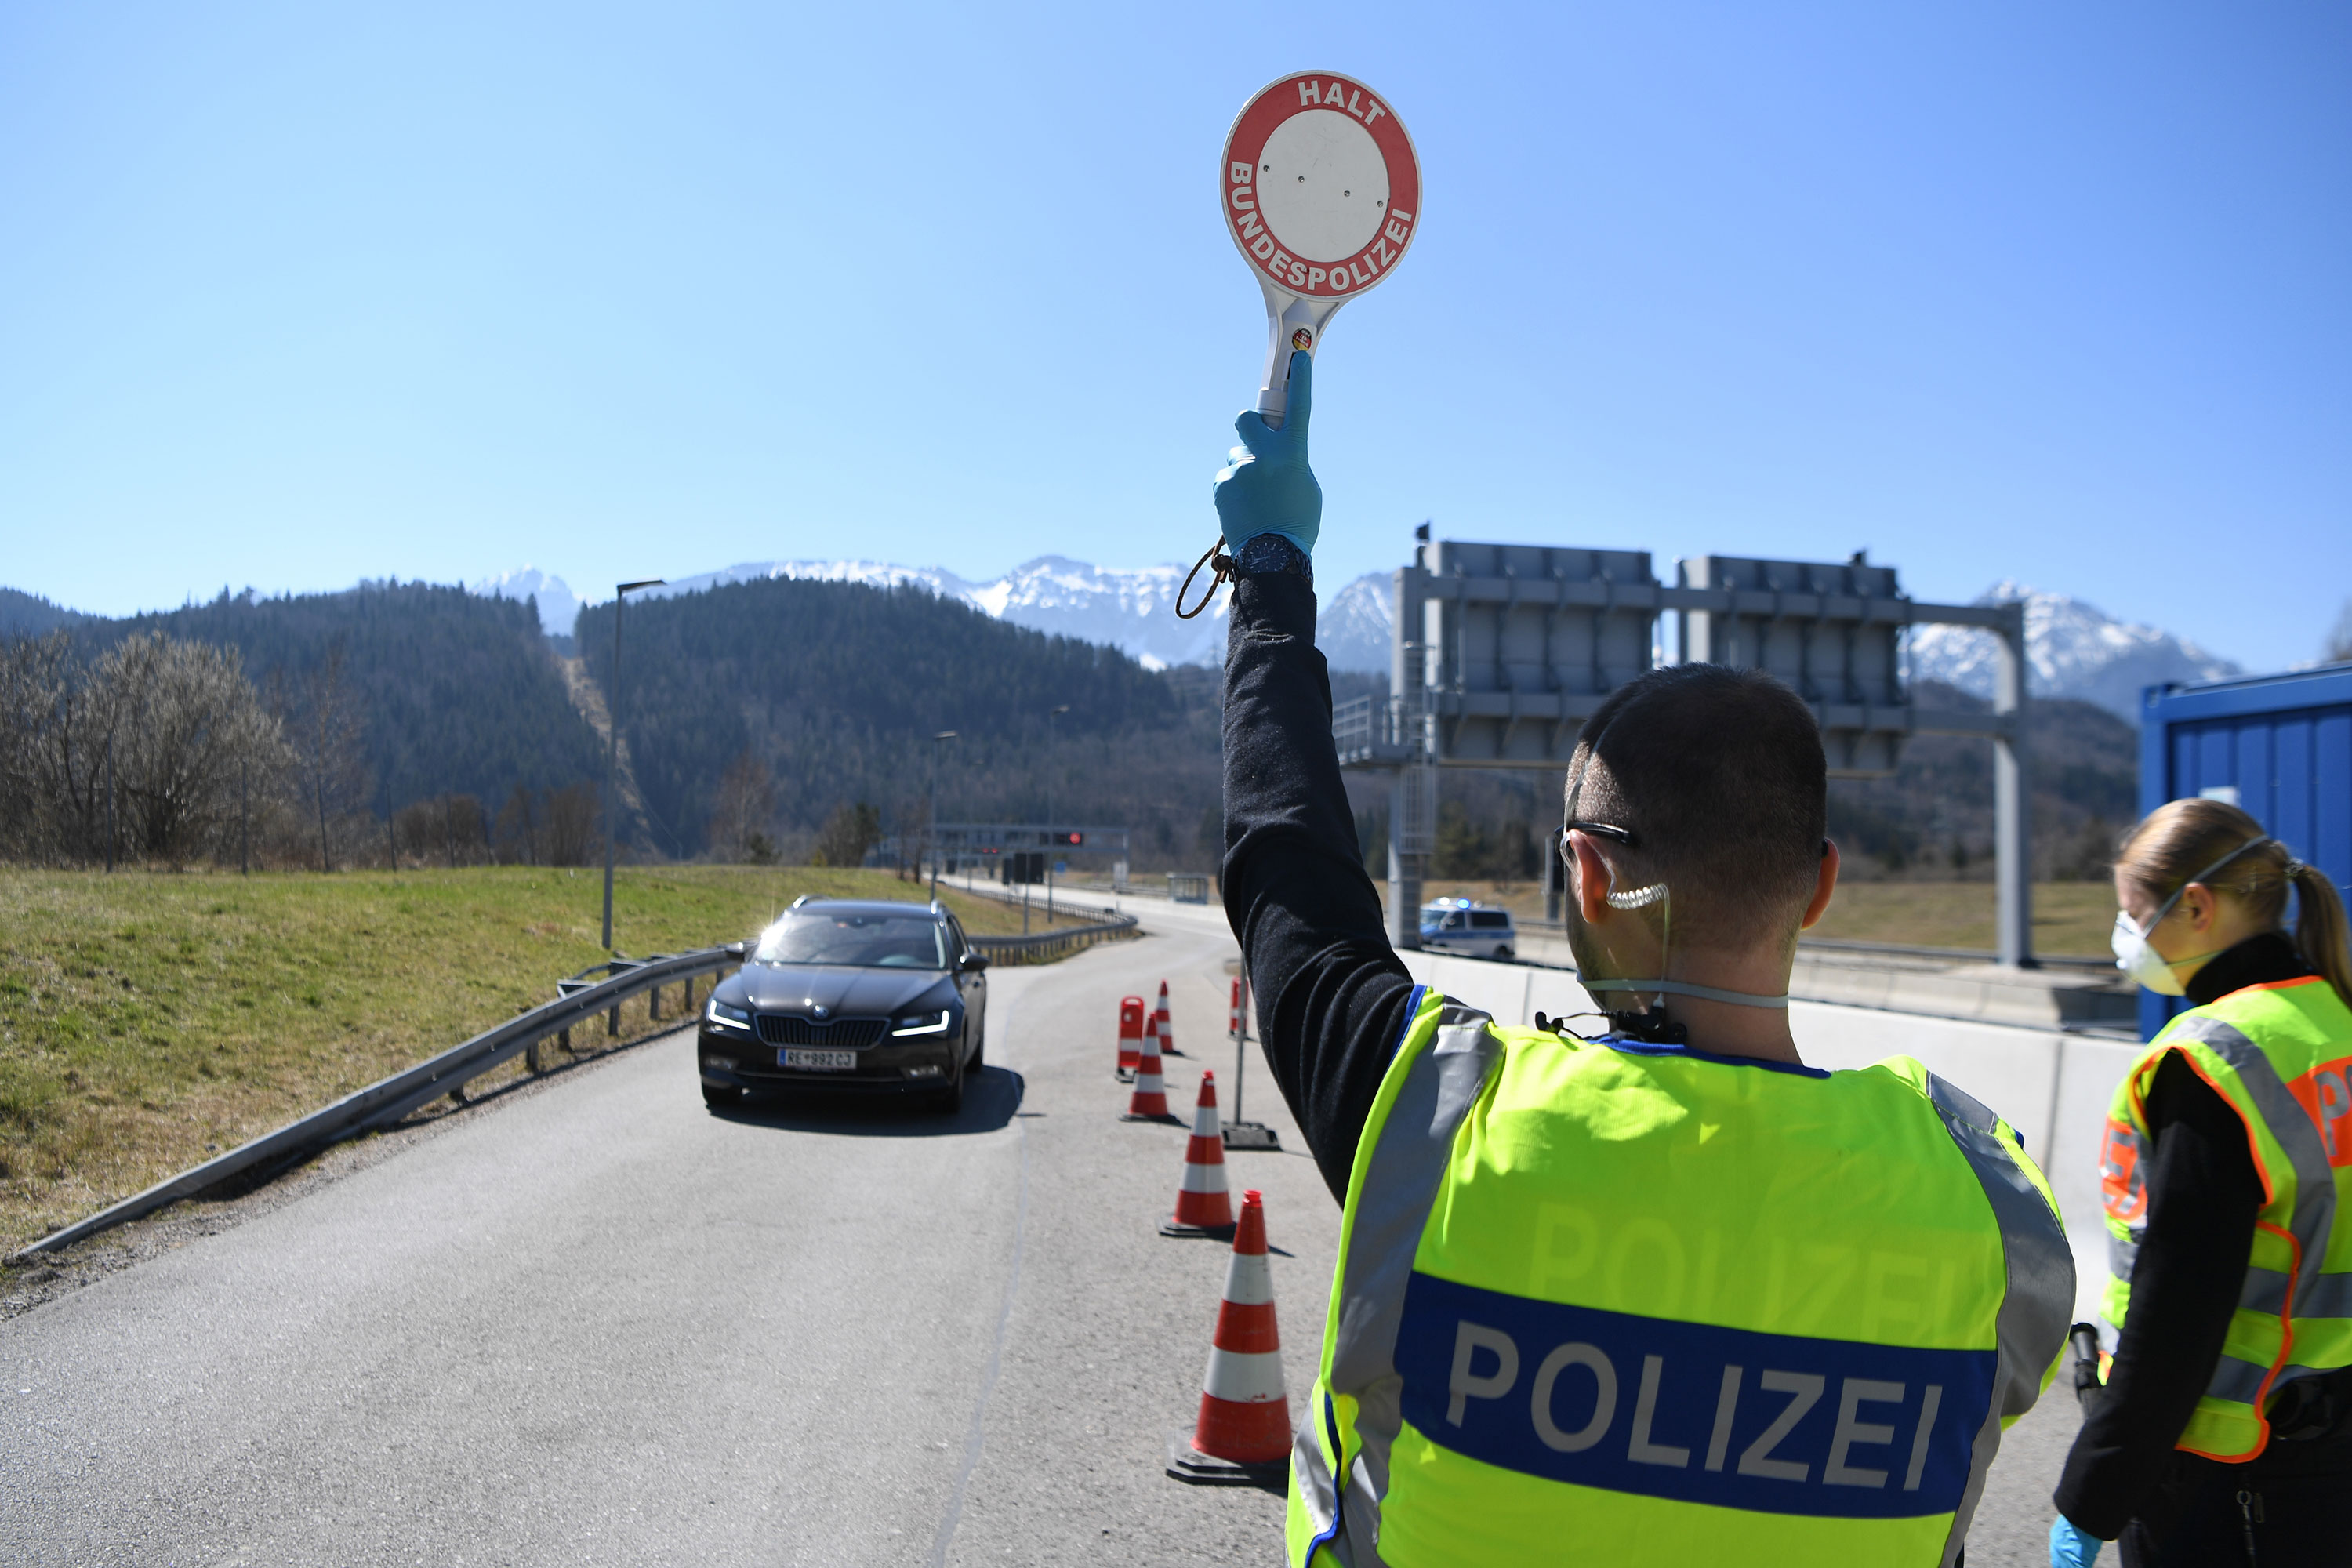 A German police officer stops a car at a checkpoint at the border to Austria, near Fussen, Germany on on April 5.